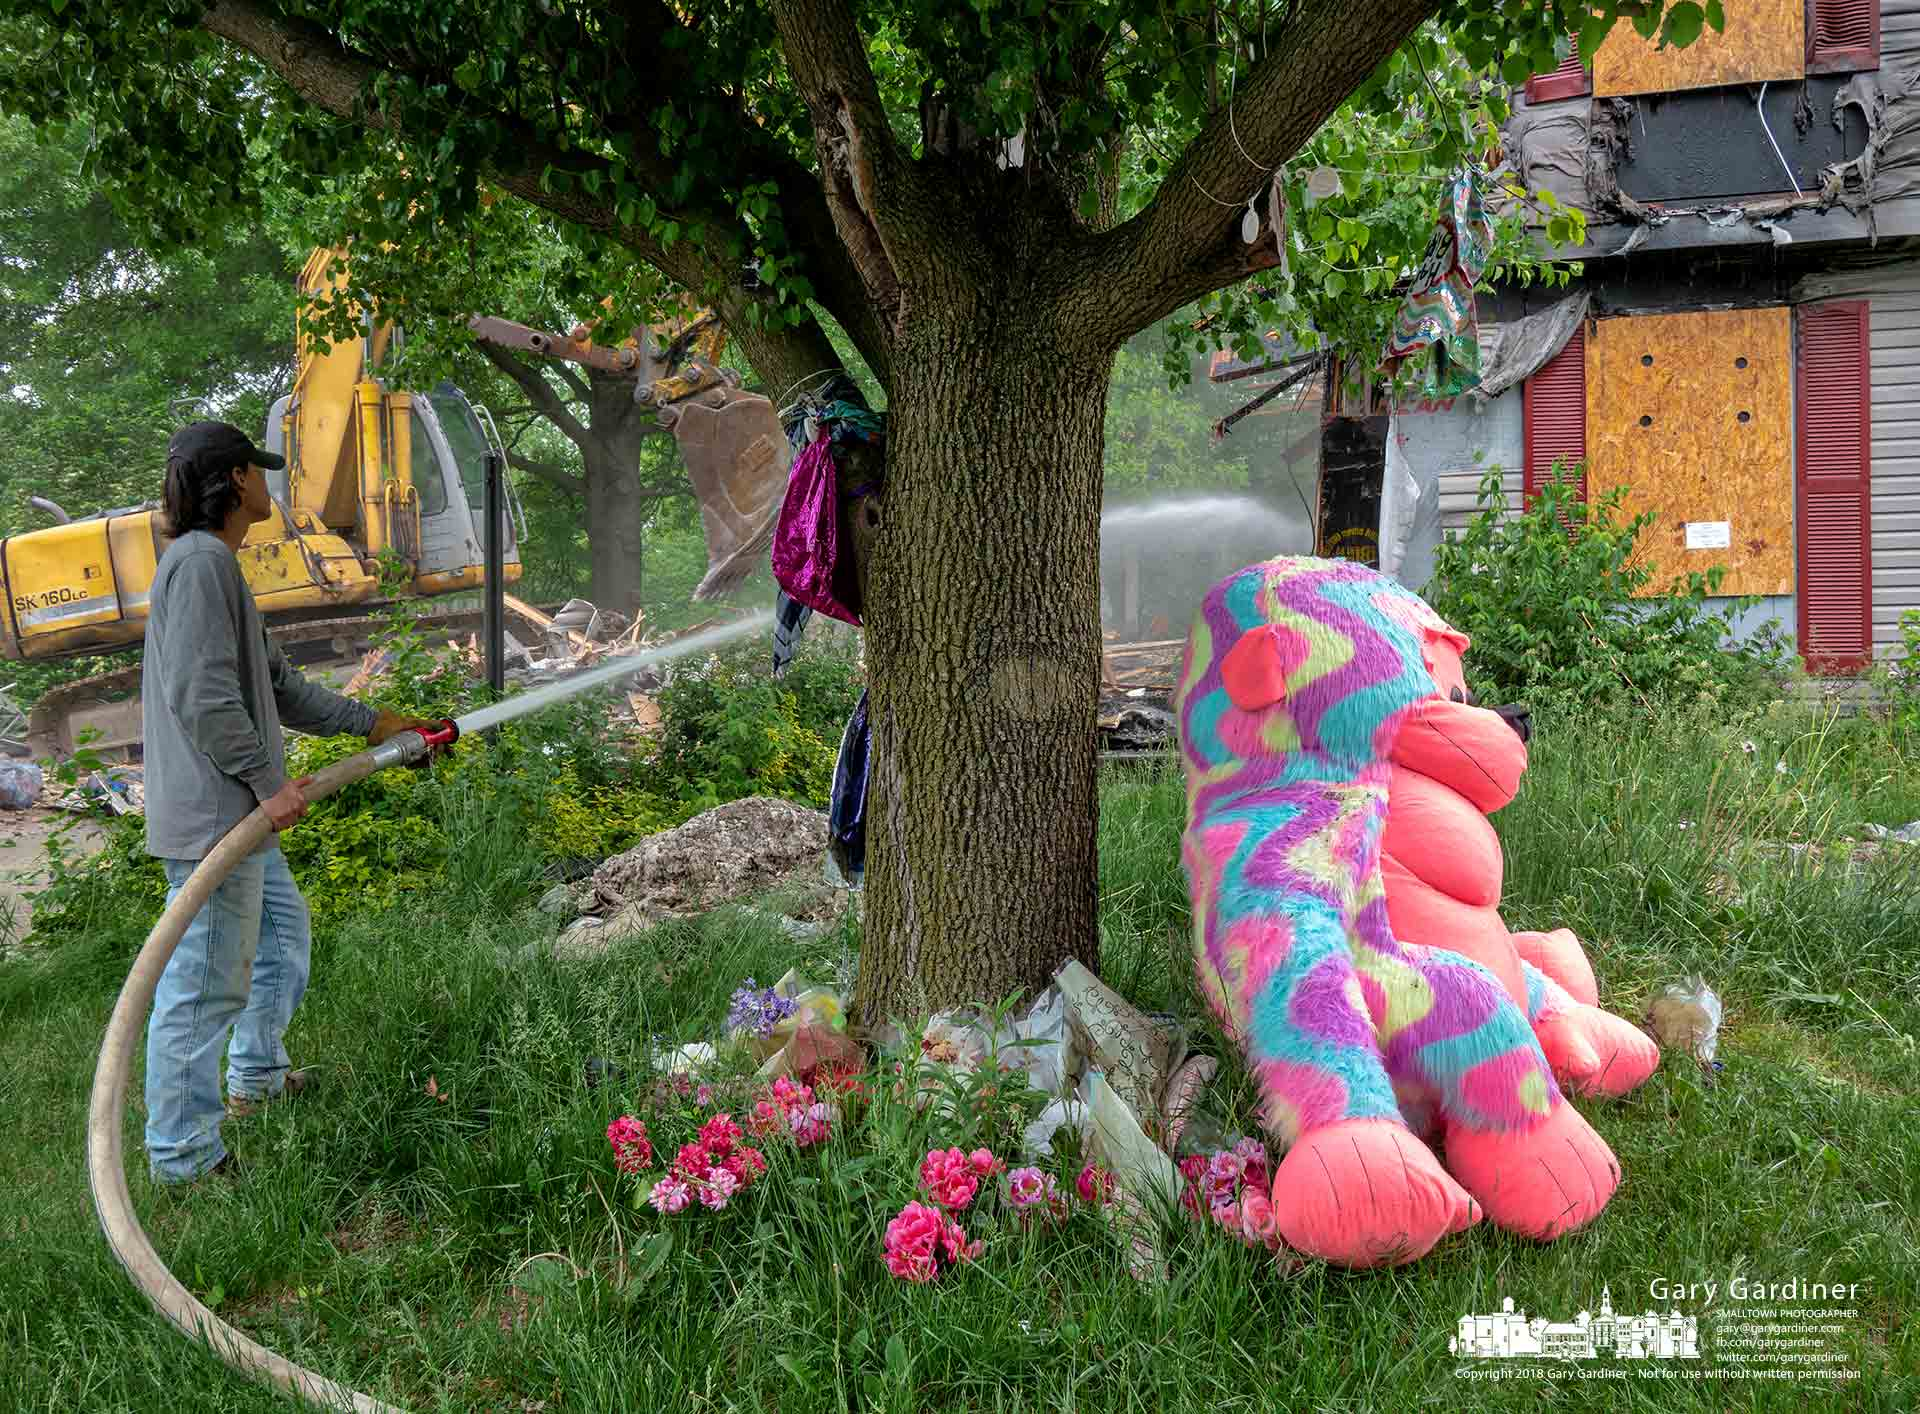 A memorial for Hannah Starver who died in a house fire sits beneath a tree in the front yard of the house as a demolition crew removes it. My Final Photo for May 18, 2018.